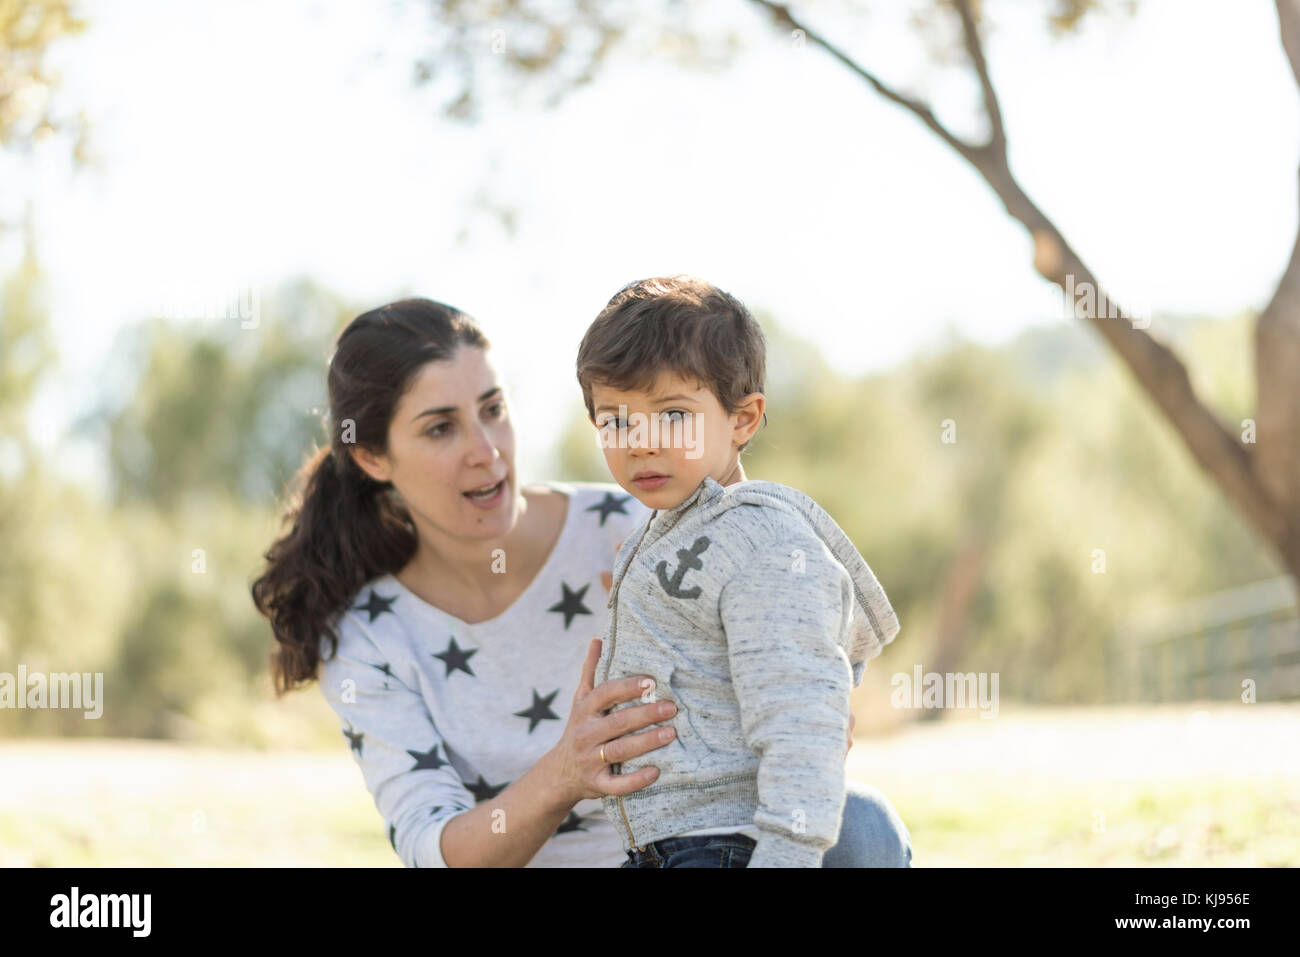 Mother and son in outdoors image in forest. - Stock Image